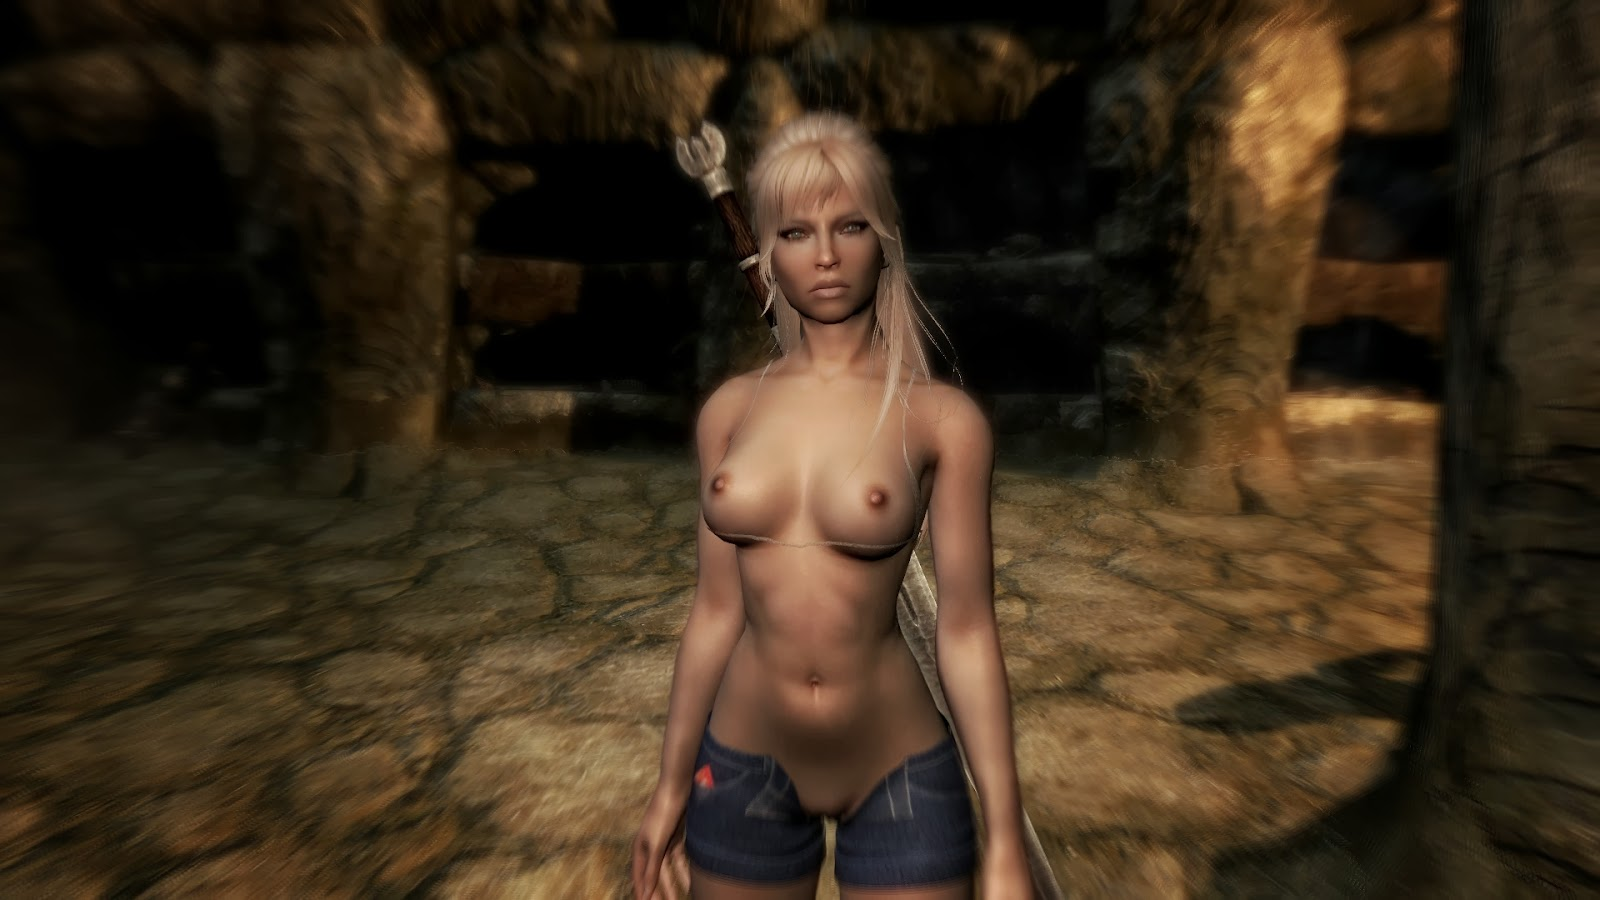 Naked pic of skyrim women and sex xxx photo